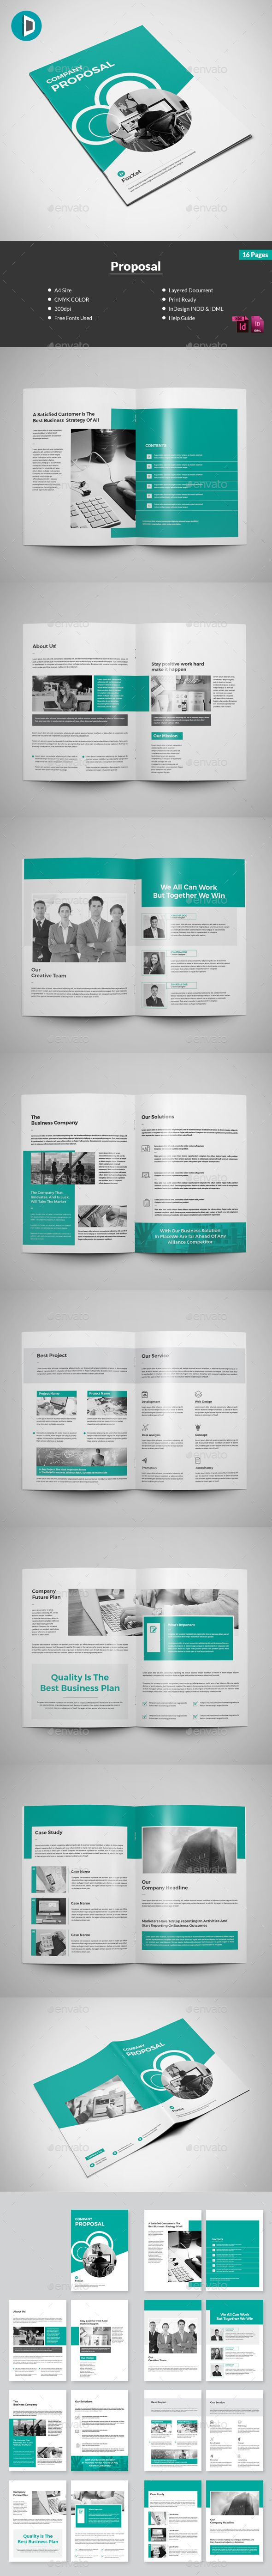 Best Best Proposal Templates Images On   Proposal